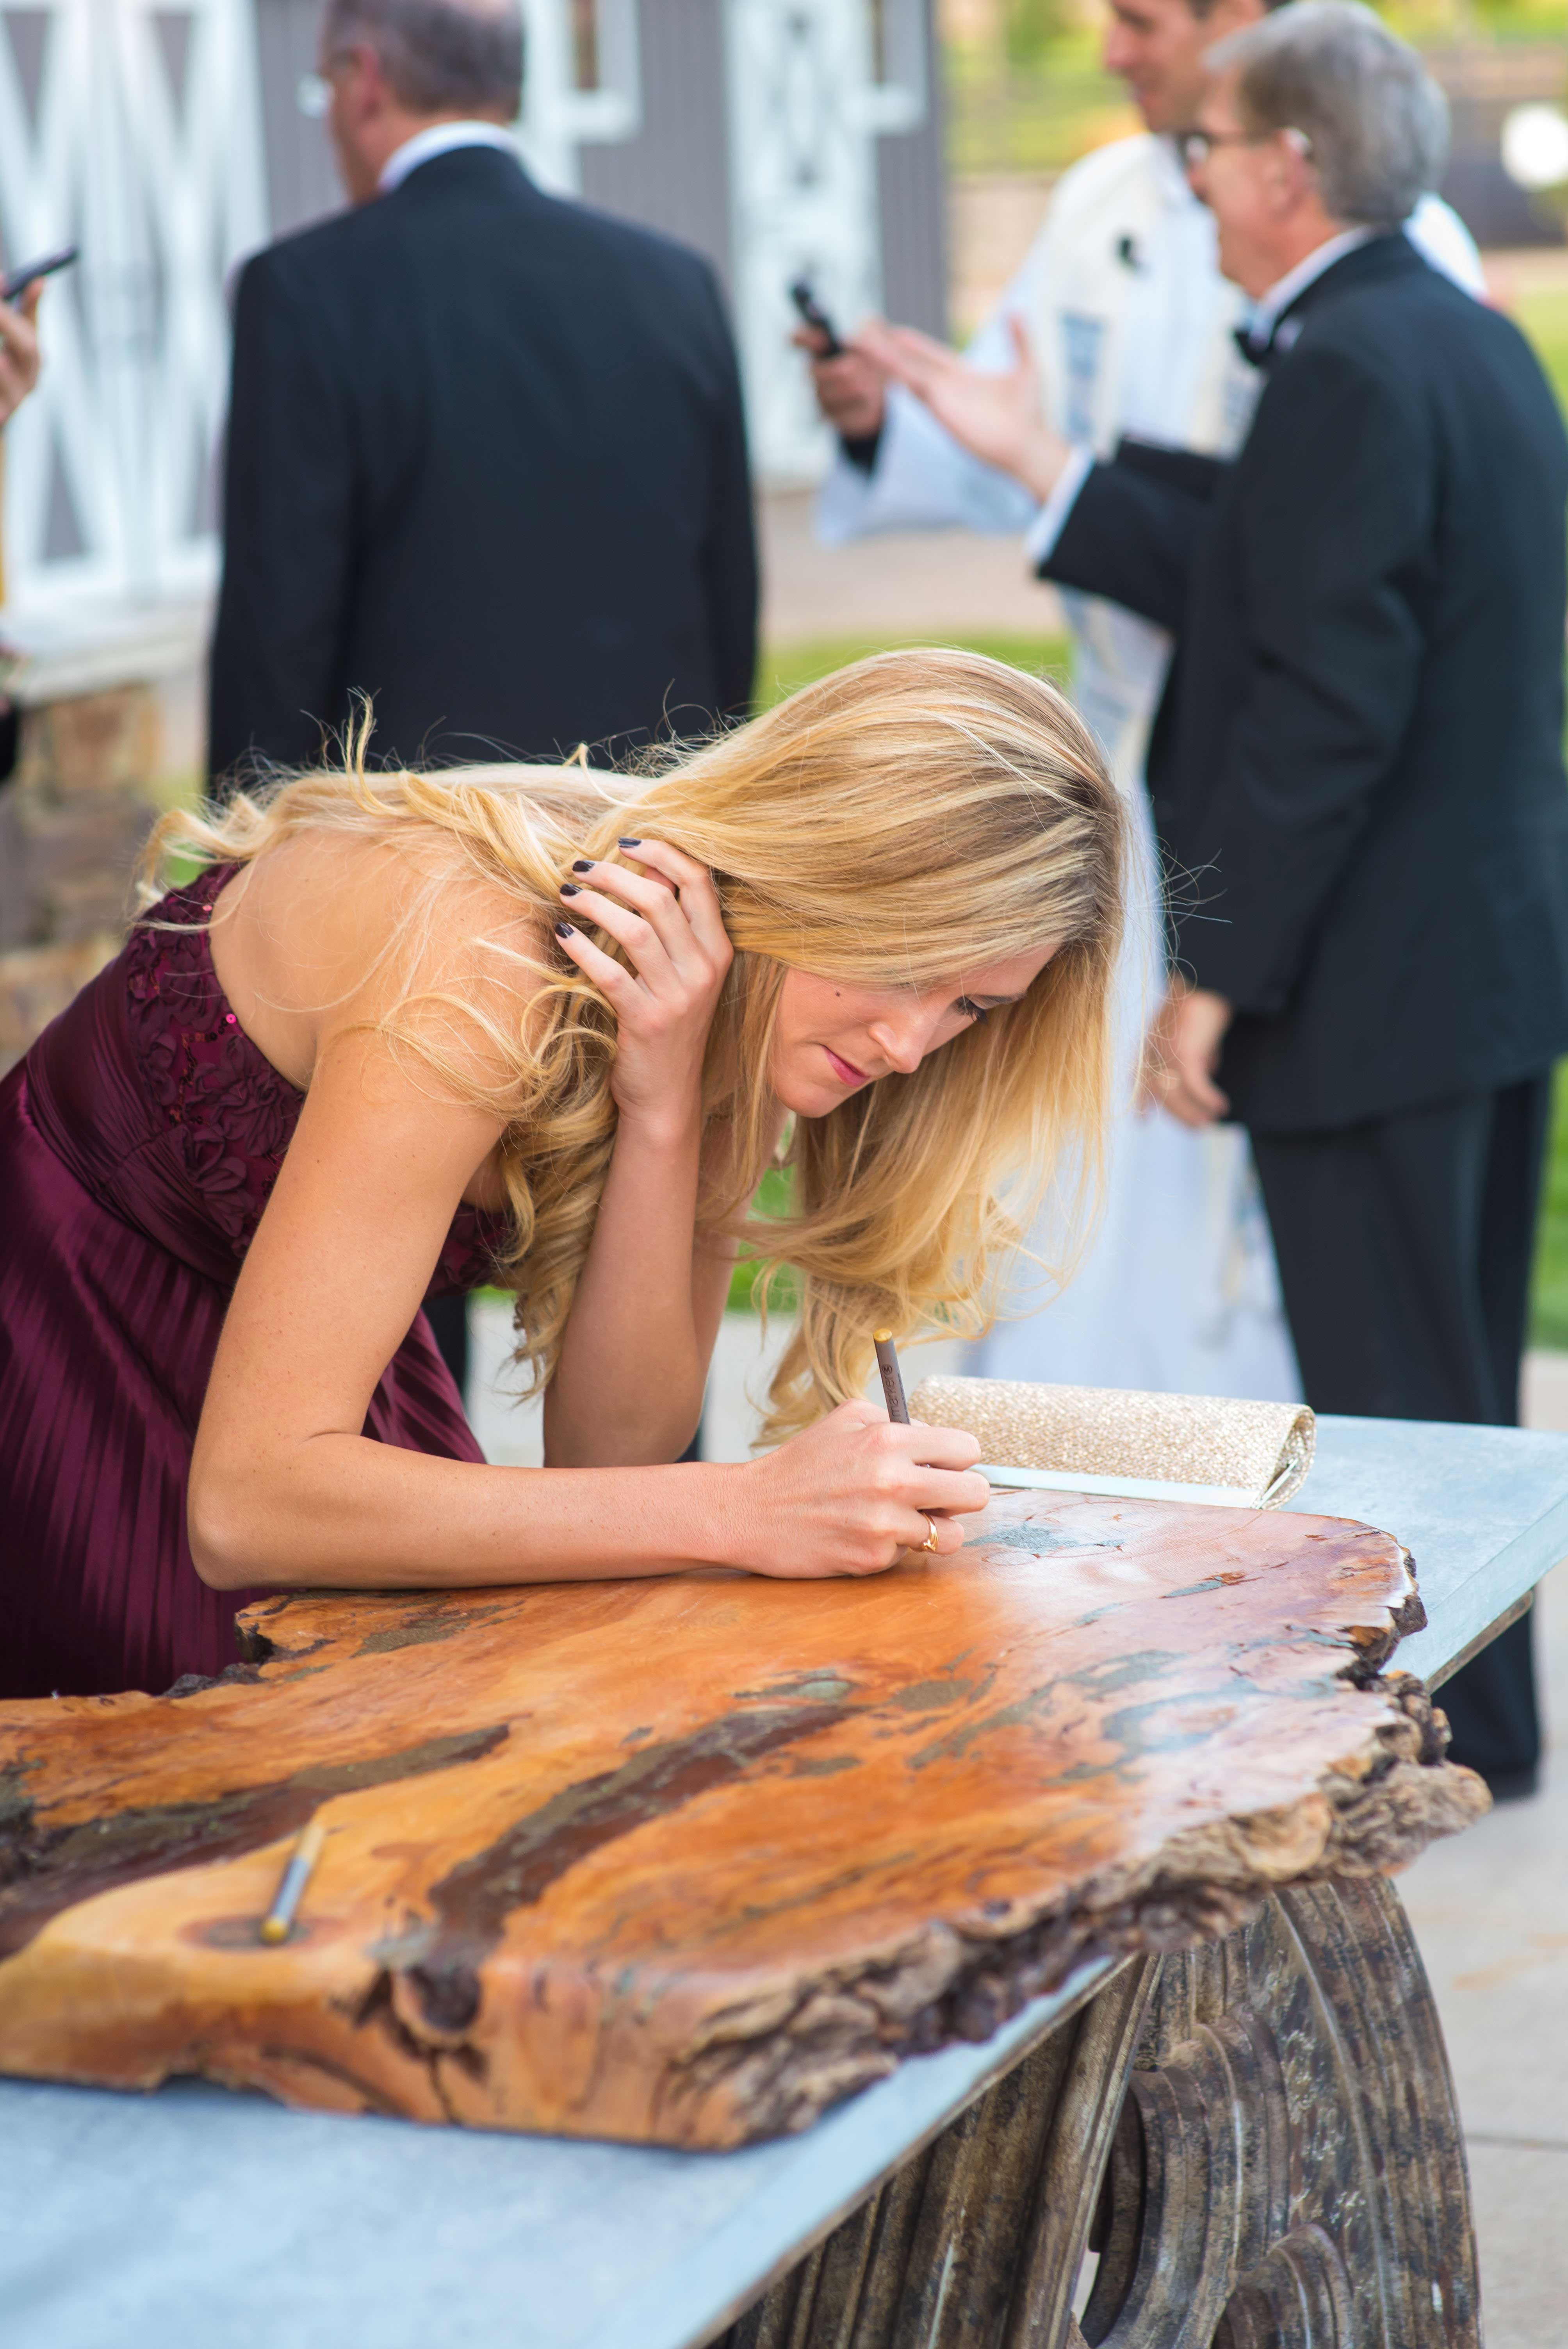 Wedding guest book ideas guestbook alternatives guest signing polished wood slab wedding